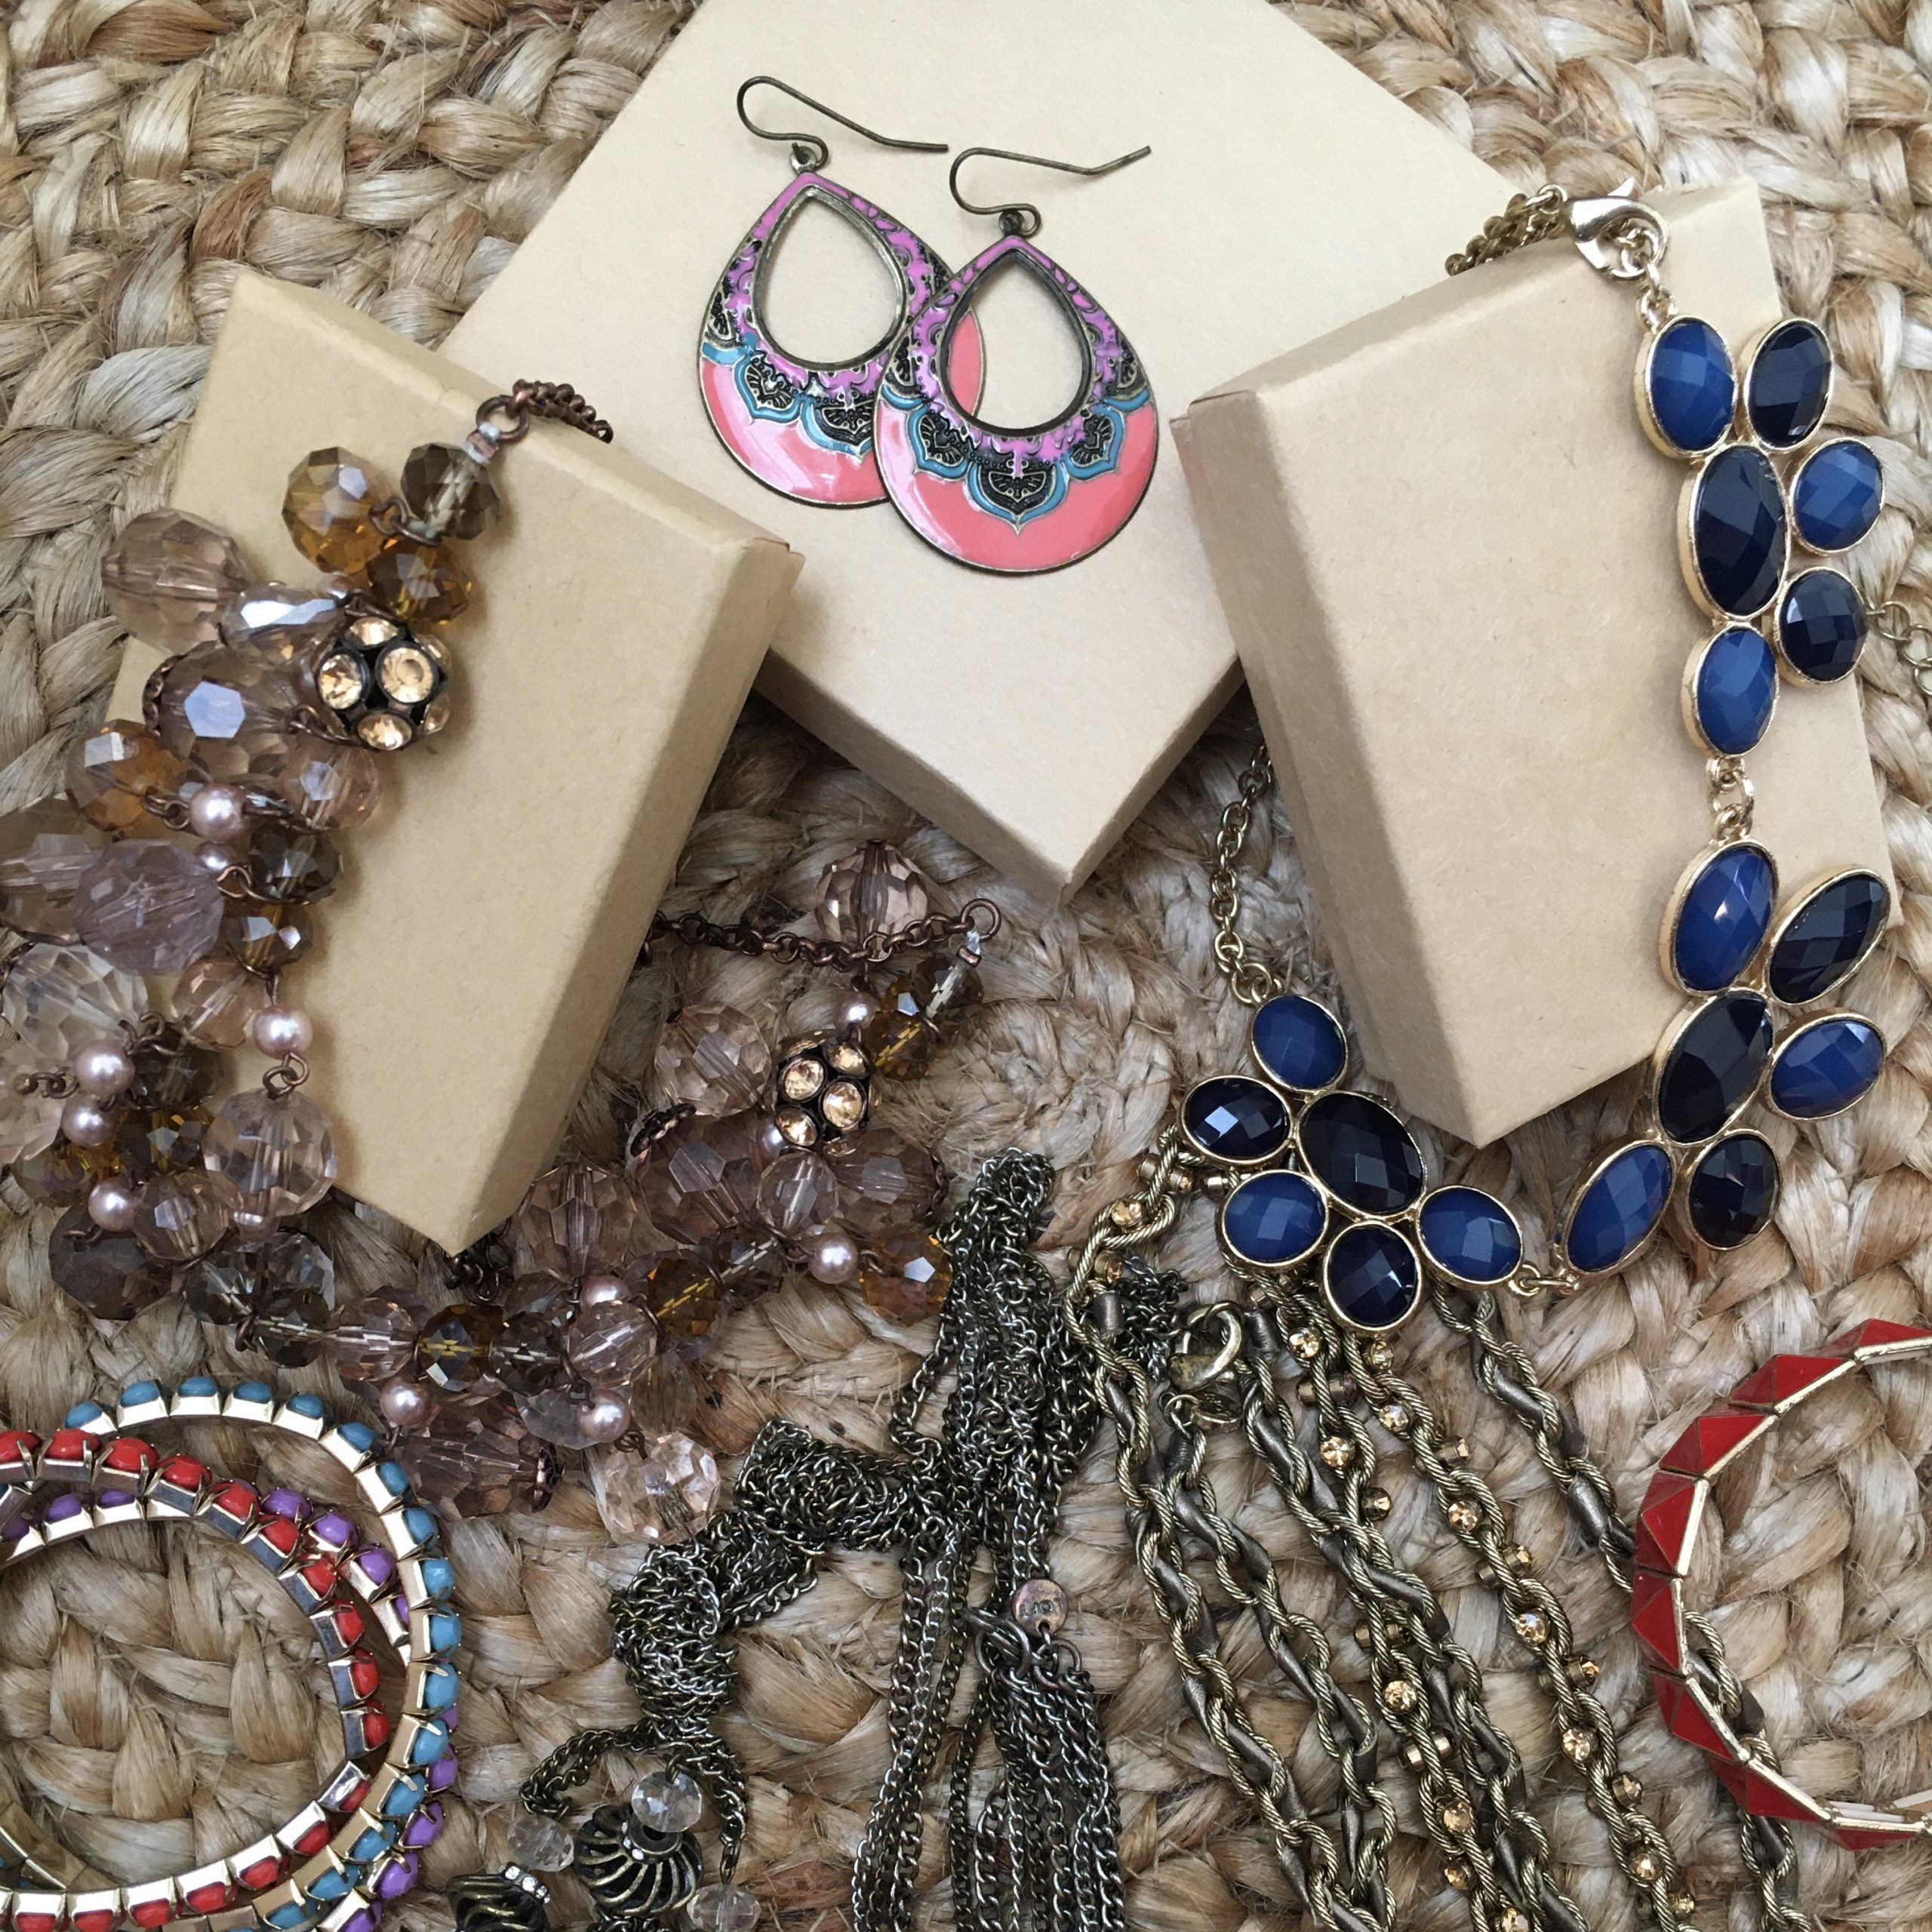 Mother's Day costume jewelry collection benefiting the children and mothers of Winter Park and Orlando Day Nurseries